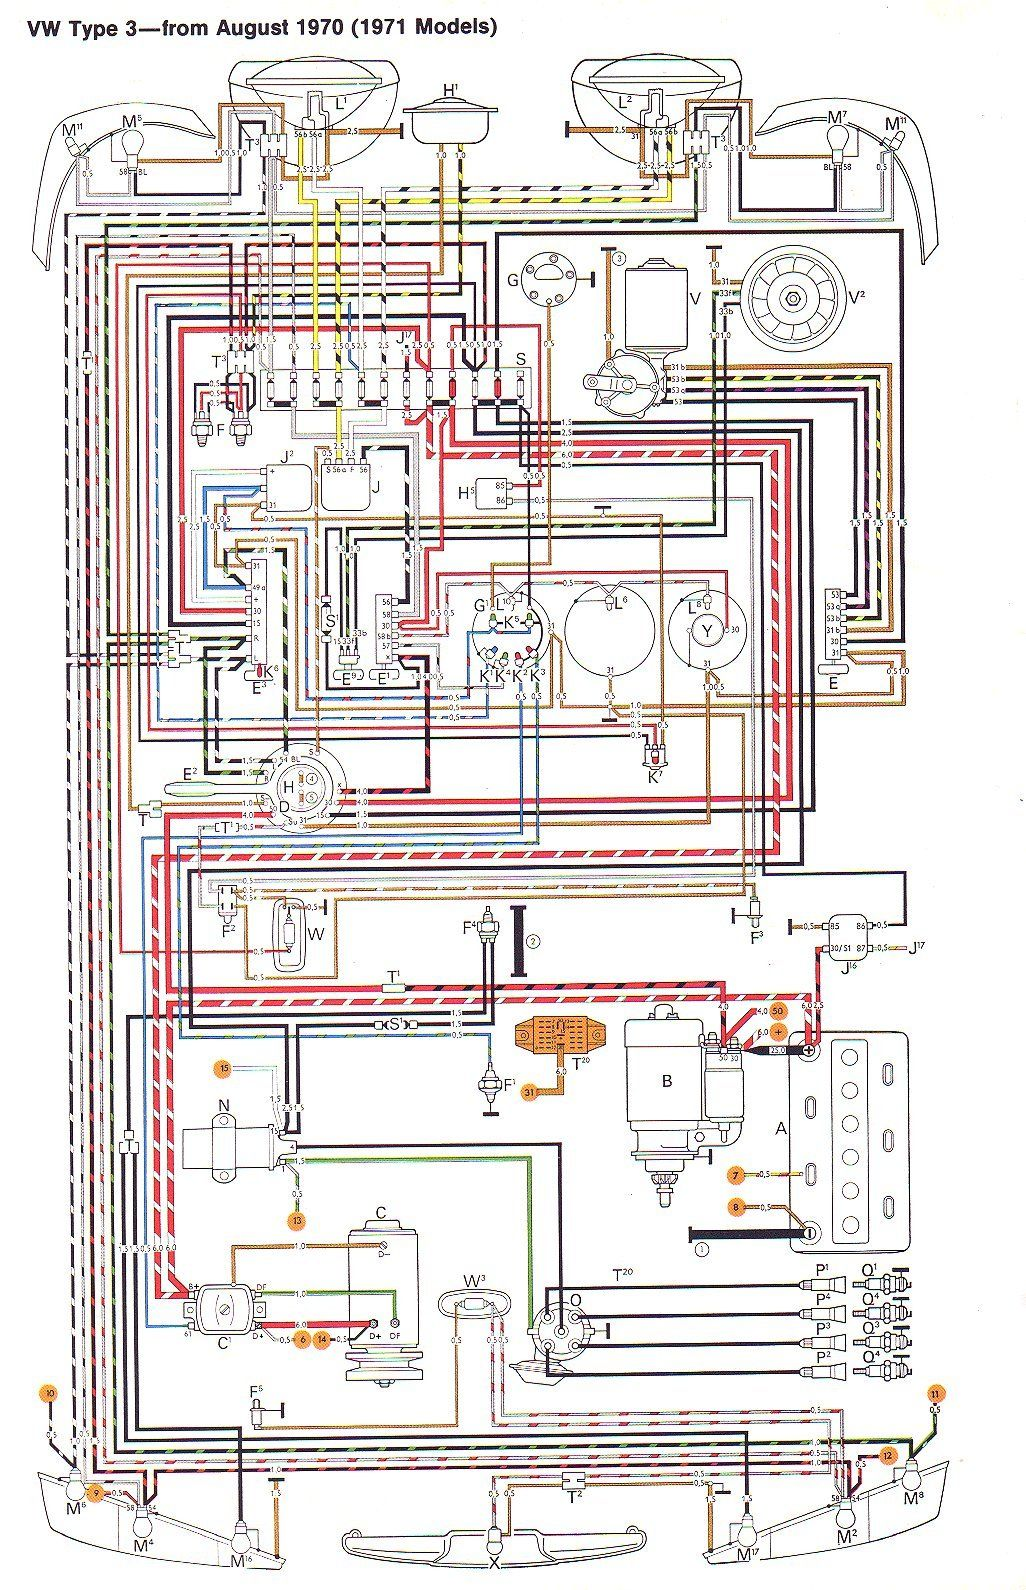 Outstanding 71 Beetle Wiring Diagram Free Picture Schematic Wiring Diagram Data Wiring 101 Mecadwellnesstrialsorg